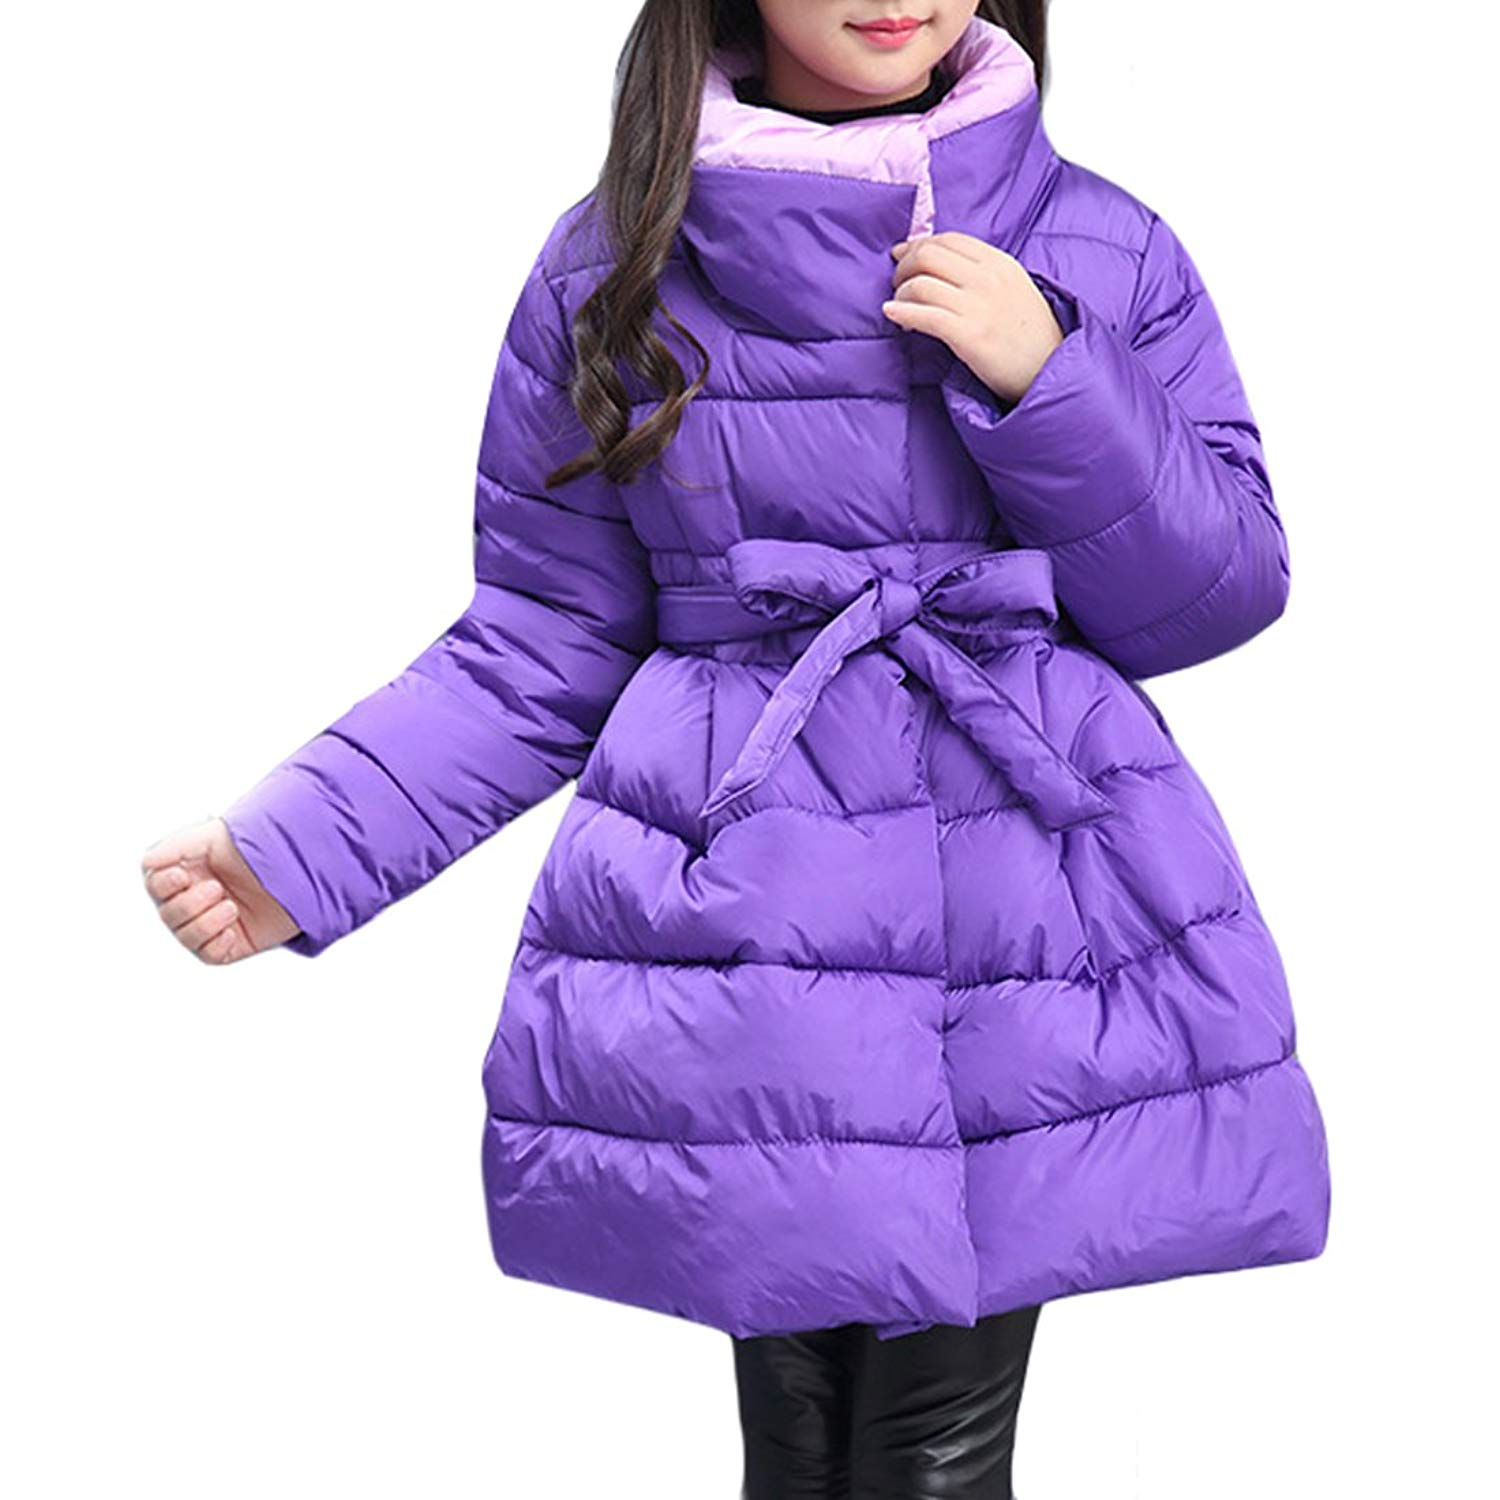 Girls Jacket Coat Padded Winter Fur Hooded Floral Polka Dots Belted 3-14 Years